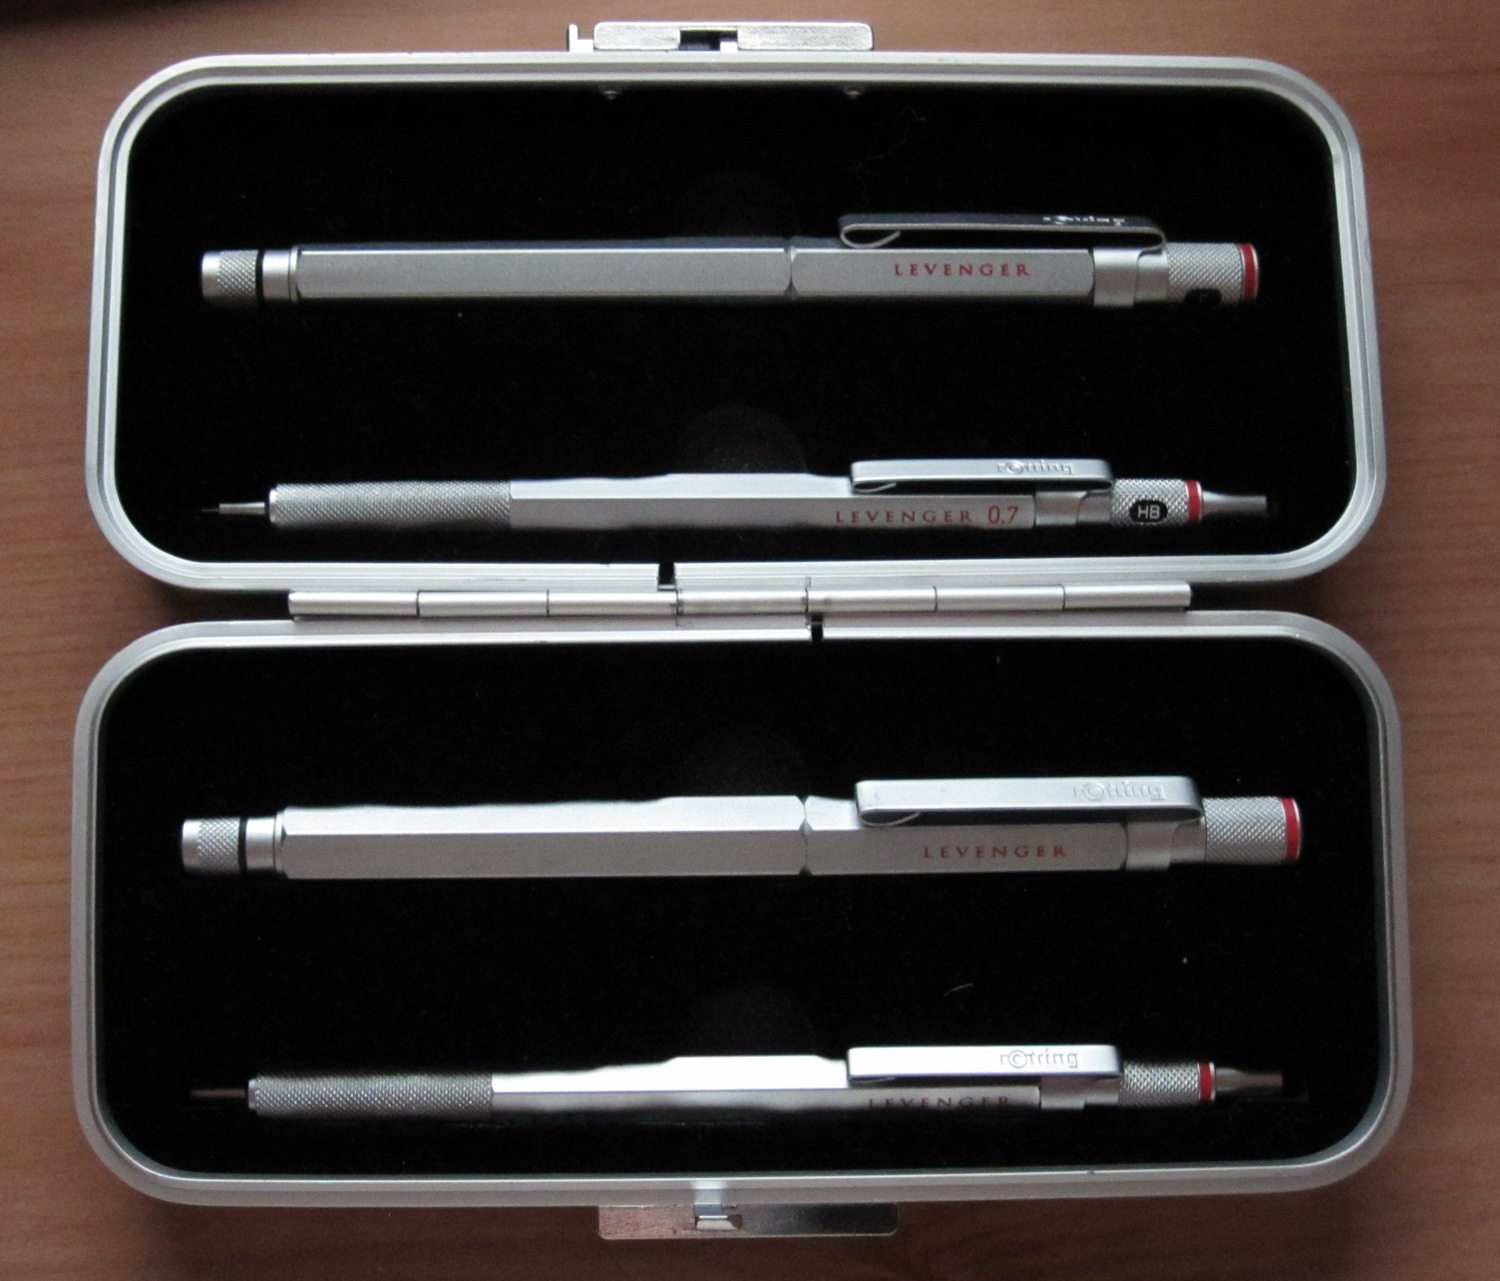 (Link to post with image:  http://www.fountainpennetwork.com/forum/index.php/topic/184613-what-have-i-got-here-rotring-levenger-ball-point-pen/  by FLJeepGuy)